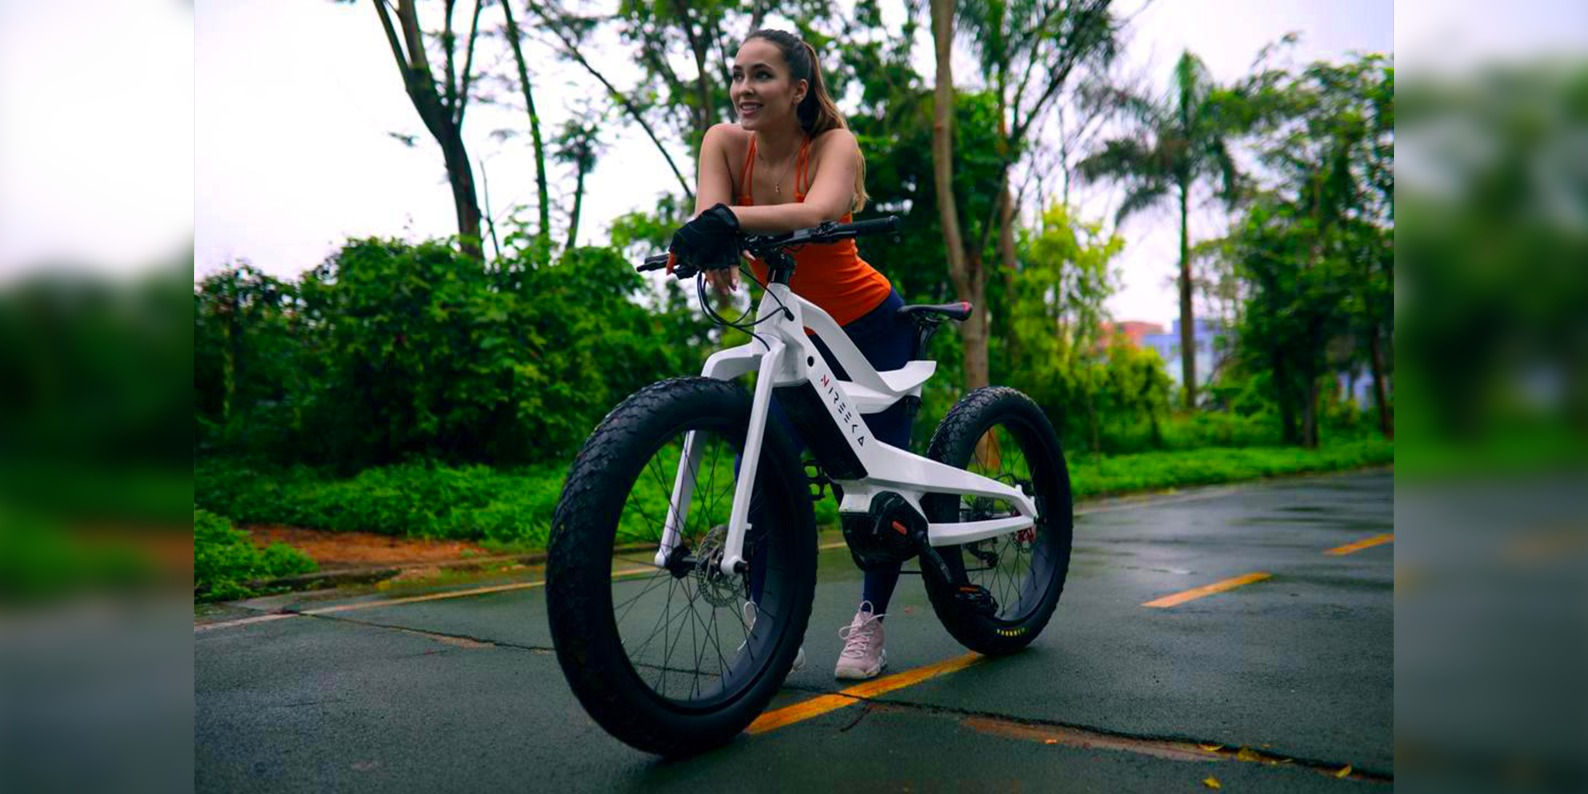 Another 1.5 kW high power e-bike enters the ring with the 37 MPH Nireeka Prime